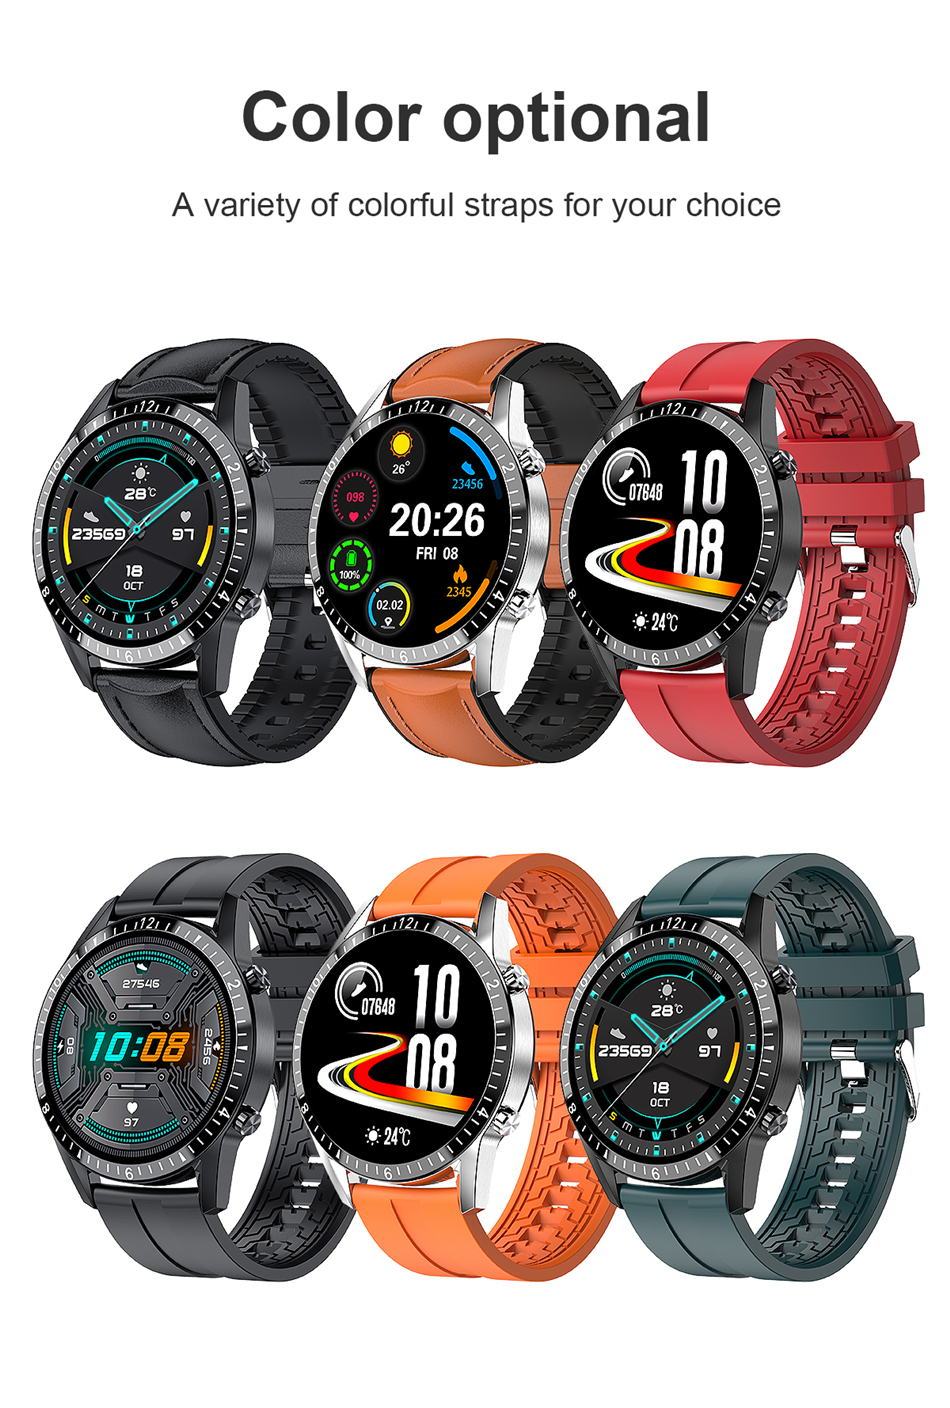 H35ba0d305ada4fd29e91e134d4eb7f3cJ 2021 Smart Watch Phone Full Touch Screen Sport Fitness Watch IP68 Waterproof Bluetooth Connection For Android ios smartwatch Men